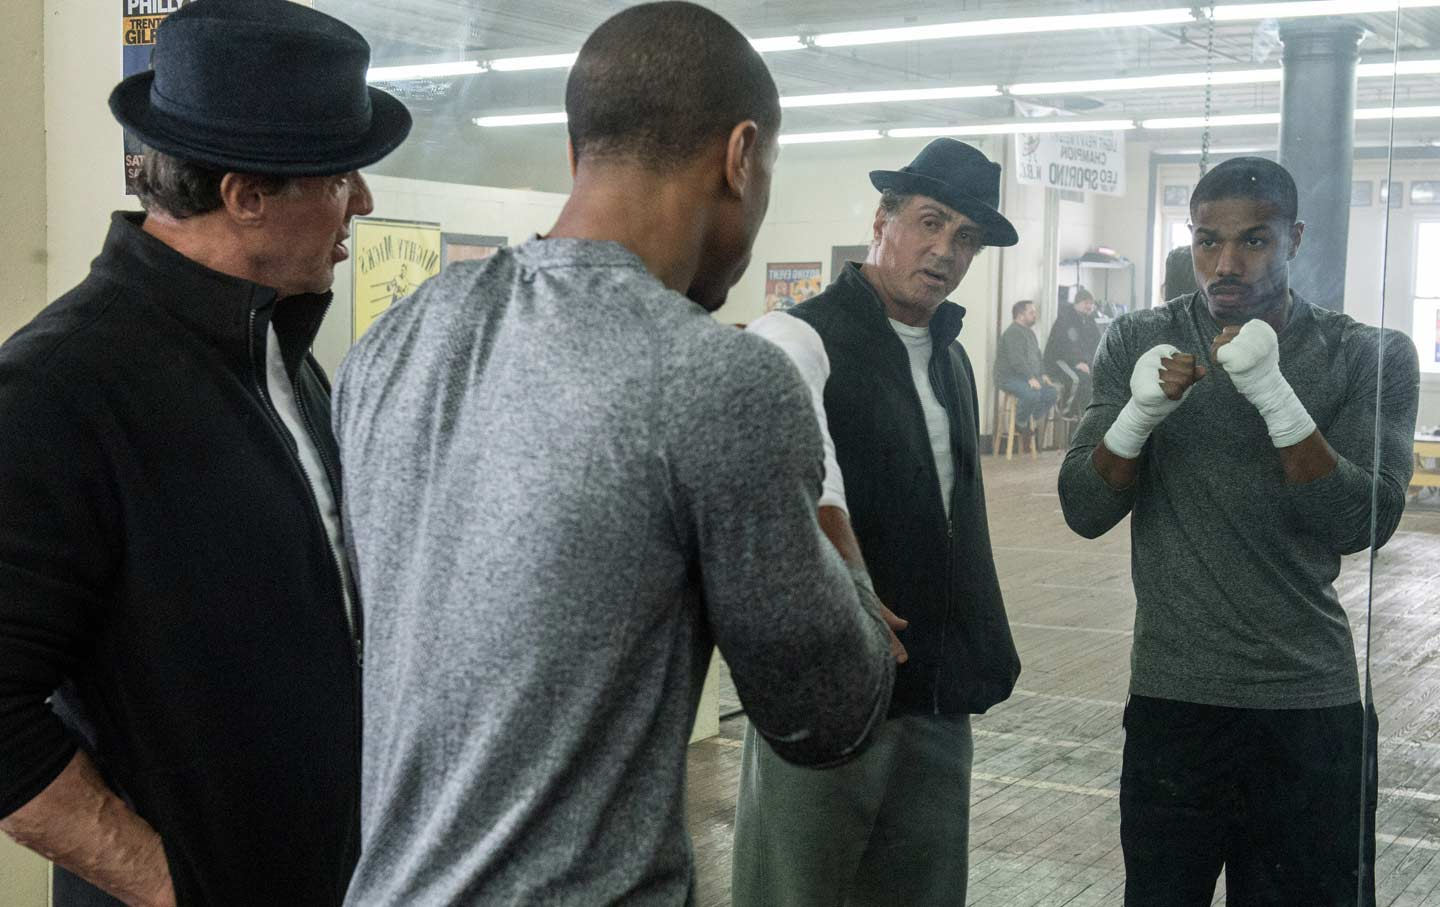 382c3b1f05afc Sylvester Stallone (left) as Rocky Balboa and Michael B. Jordan as Adonis  Johnson in Creed. (© MGM and Warner Bros. Entertainment)